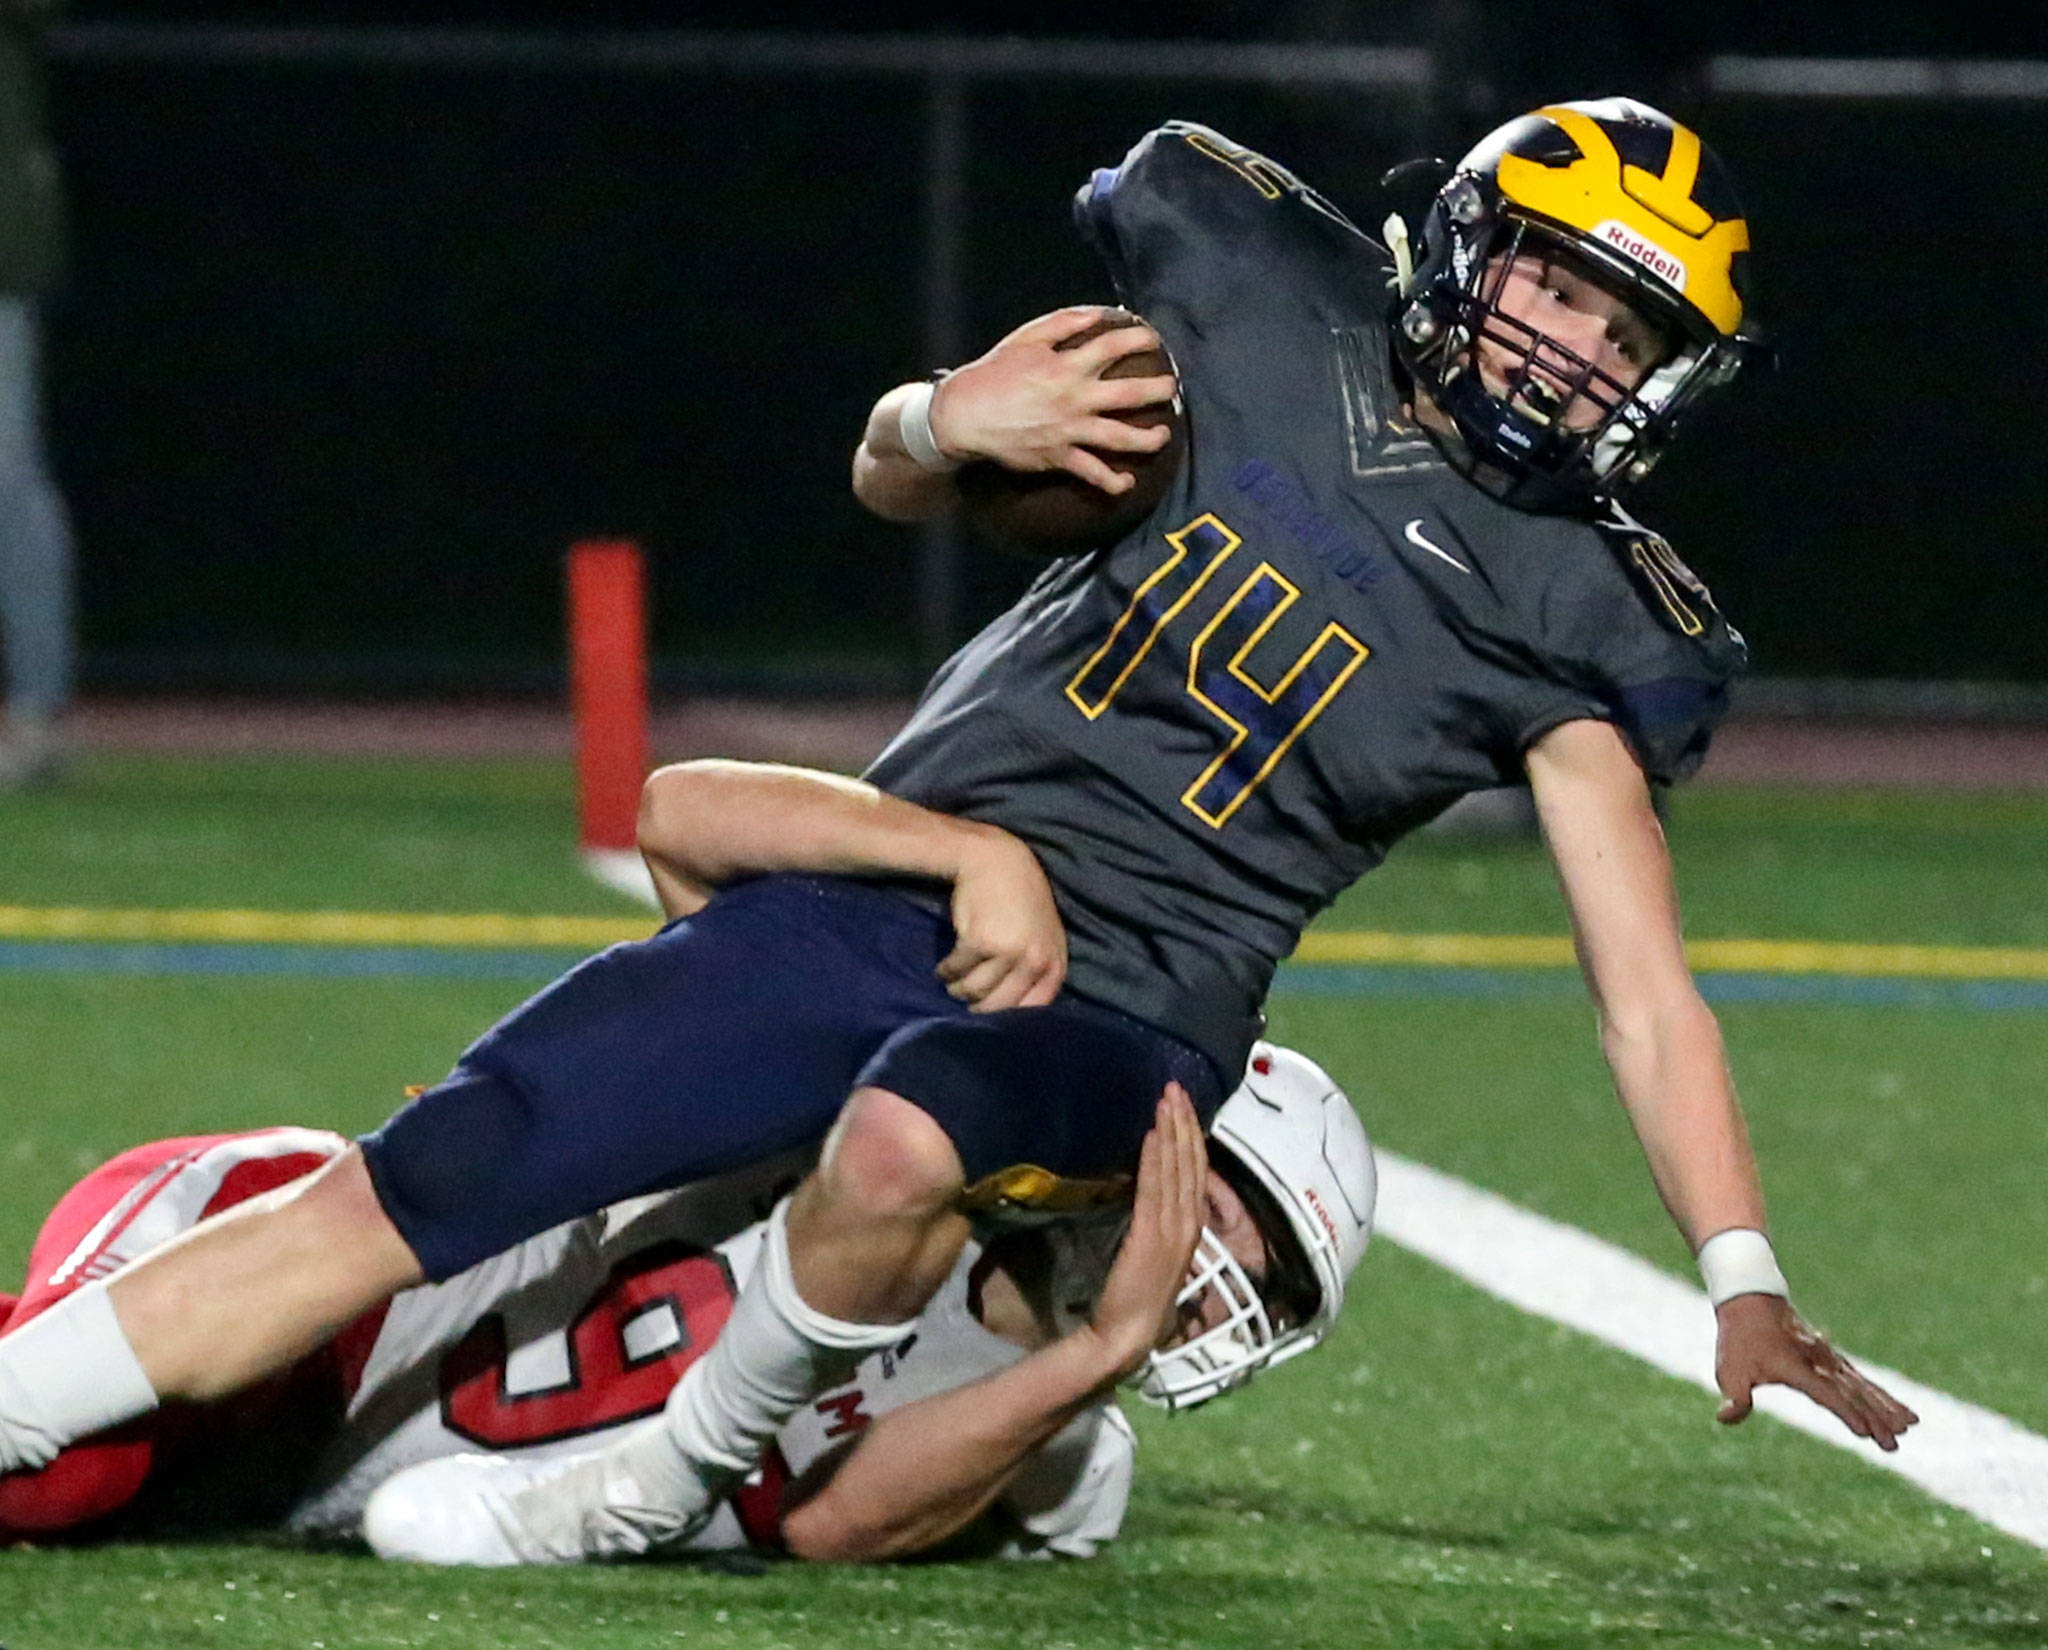 Bellevue's Alex Reid falls across the goal line for a touchdown over Snohomish's Noah Dunham on Friday in Bellevue. (Kevin Clark / The Herald)